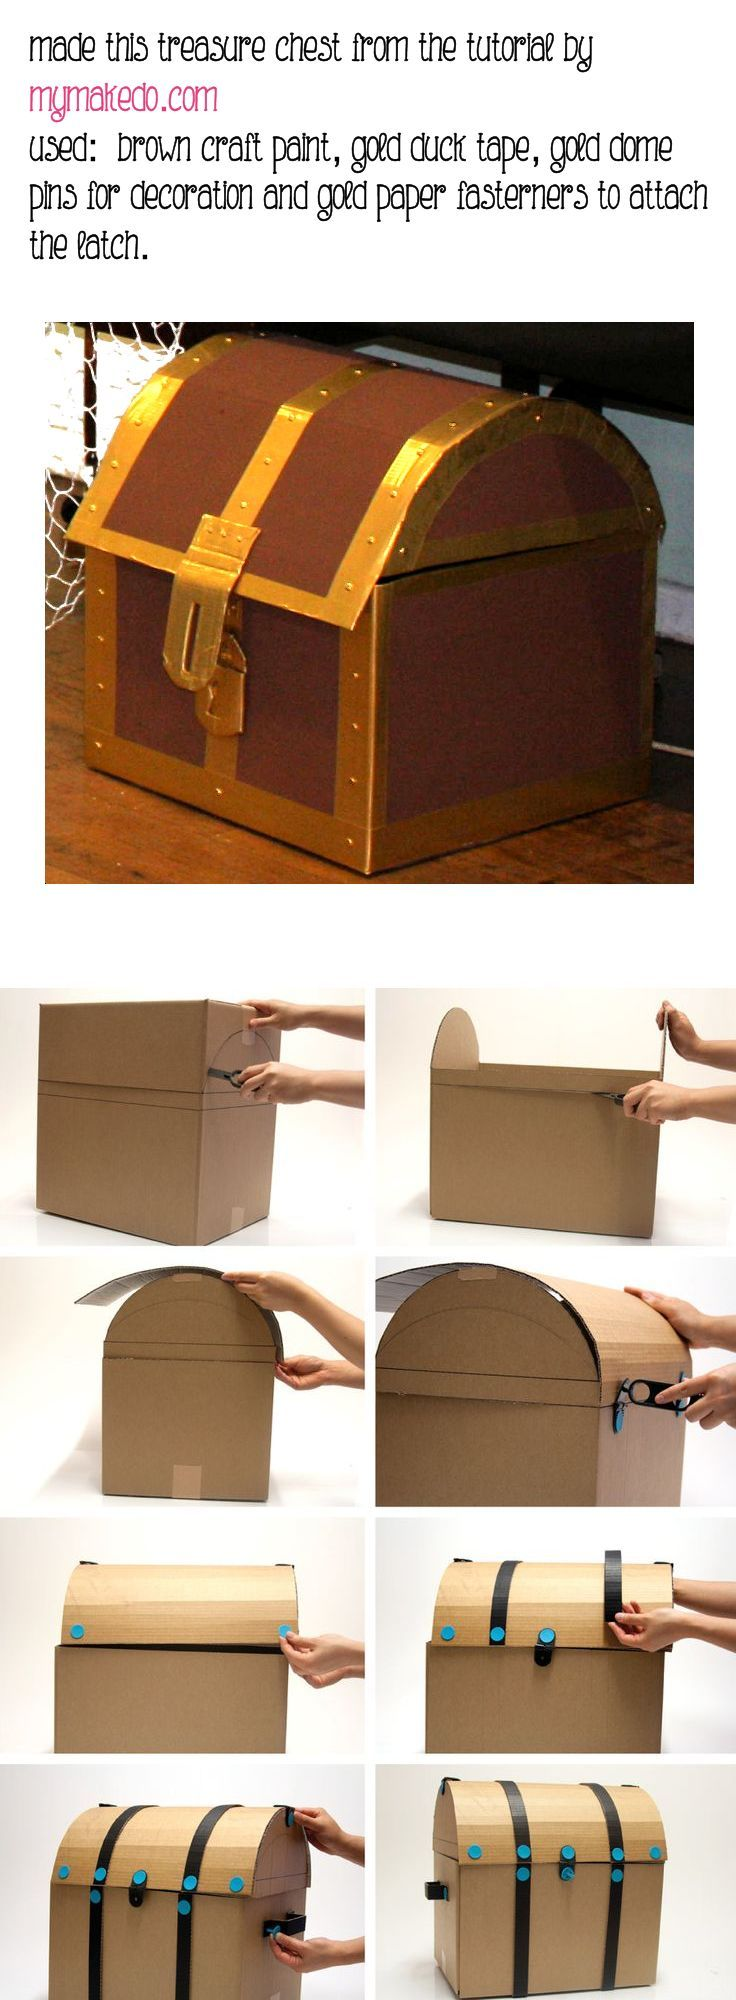 Treasure Chest Decorations Diy Cardboard Pirate Treasure Chest Crafts Pinterest Pirate